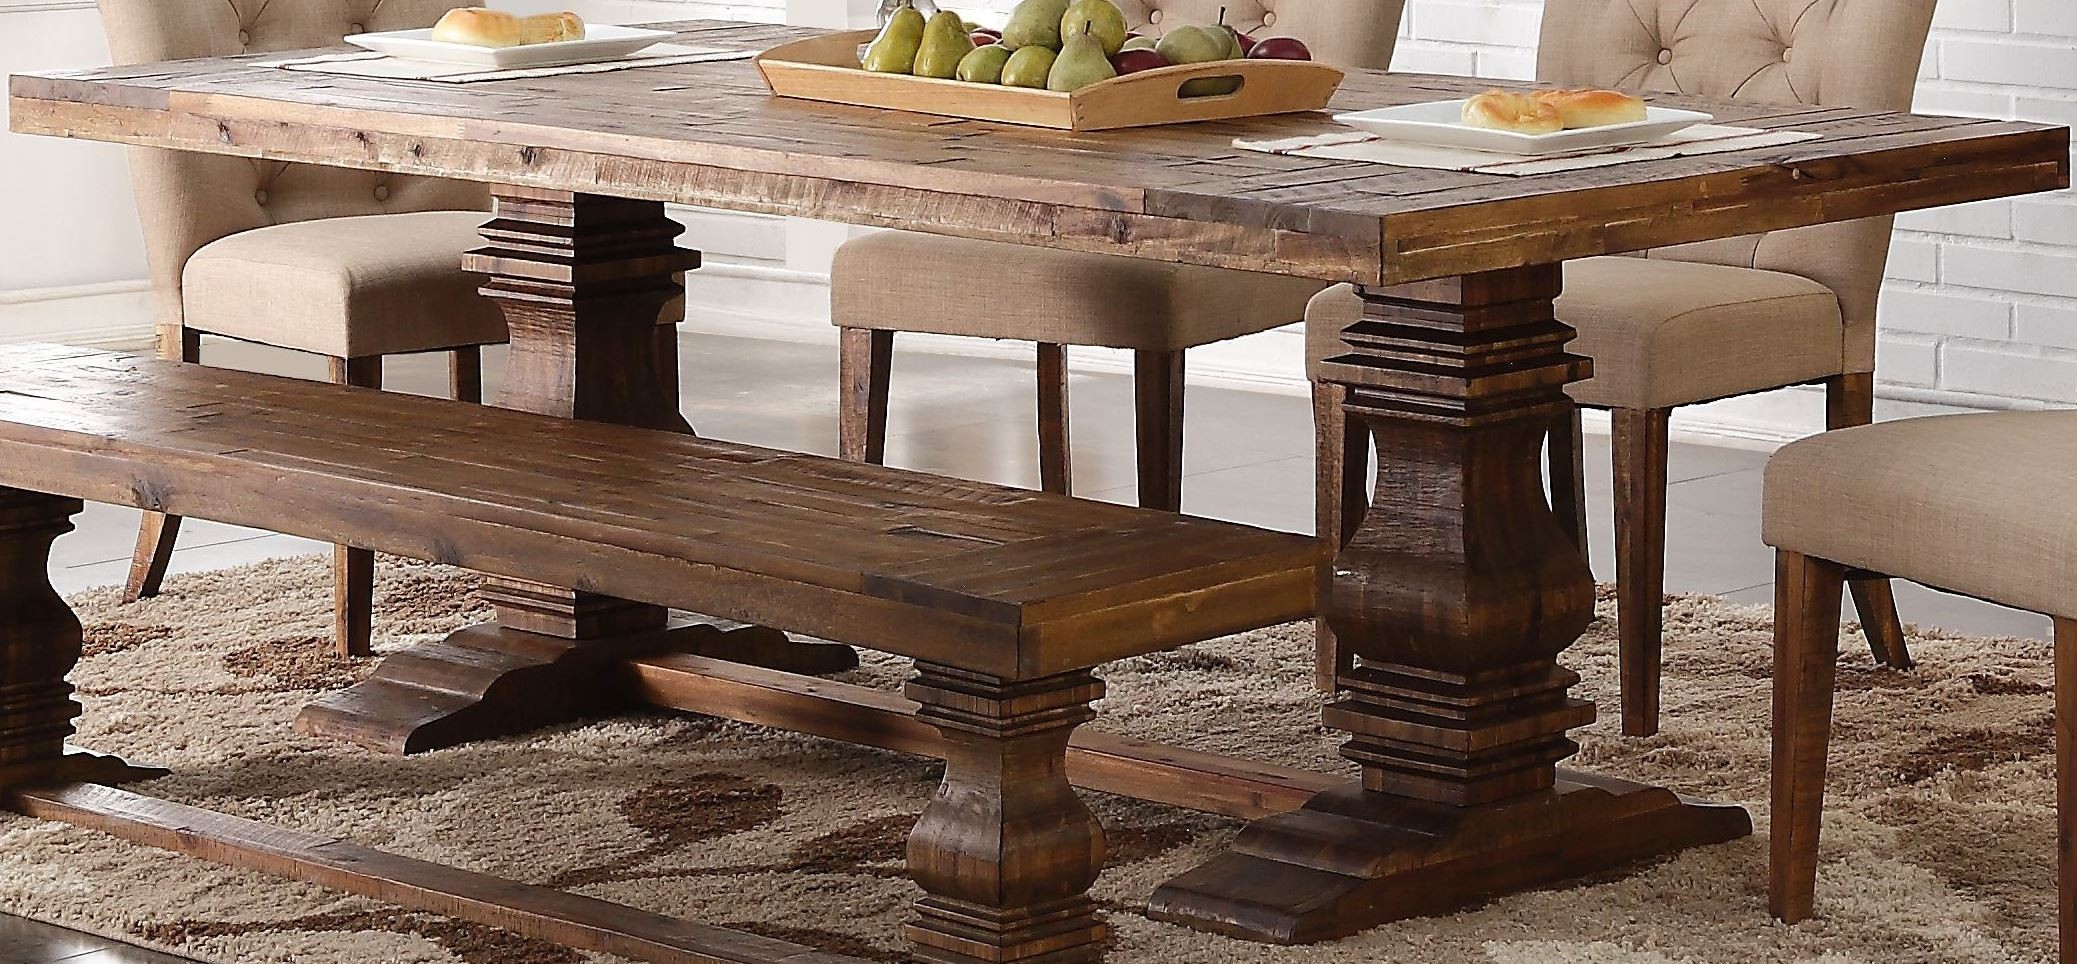 Normandy Vintage Distressed Dining Table D1232 10 10B New Classics